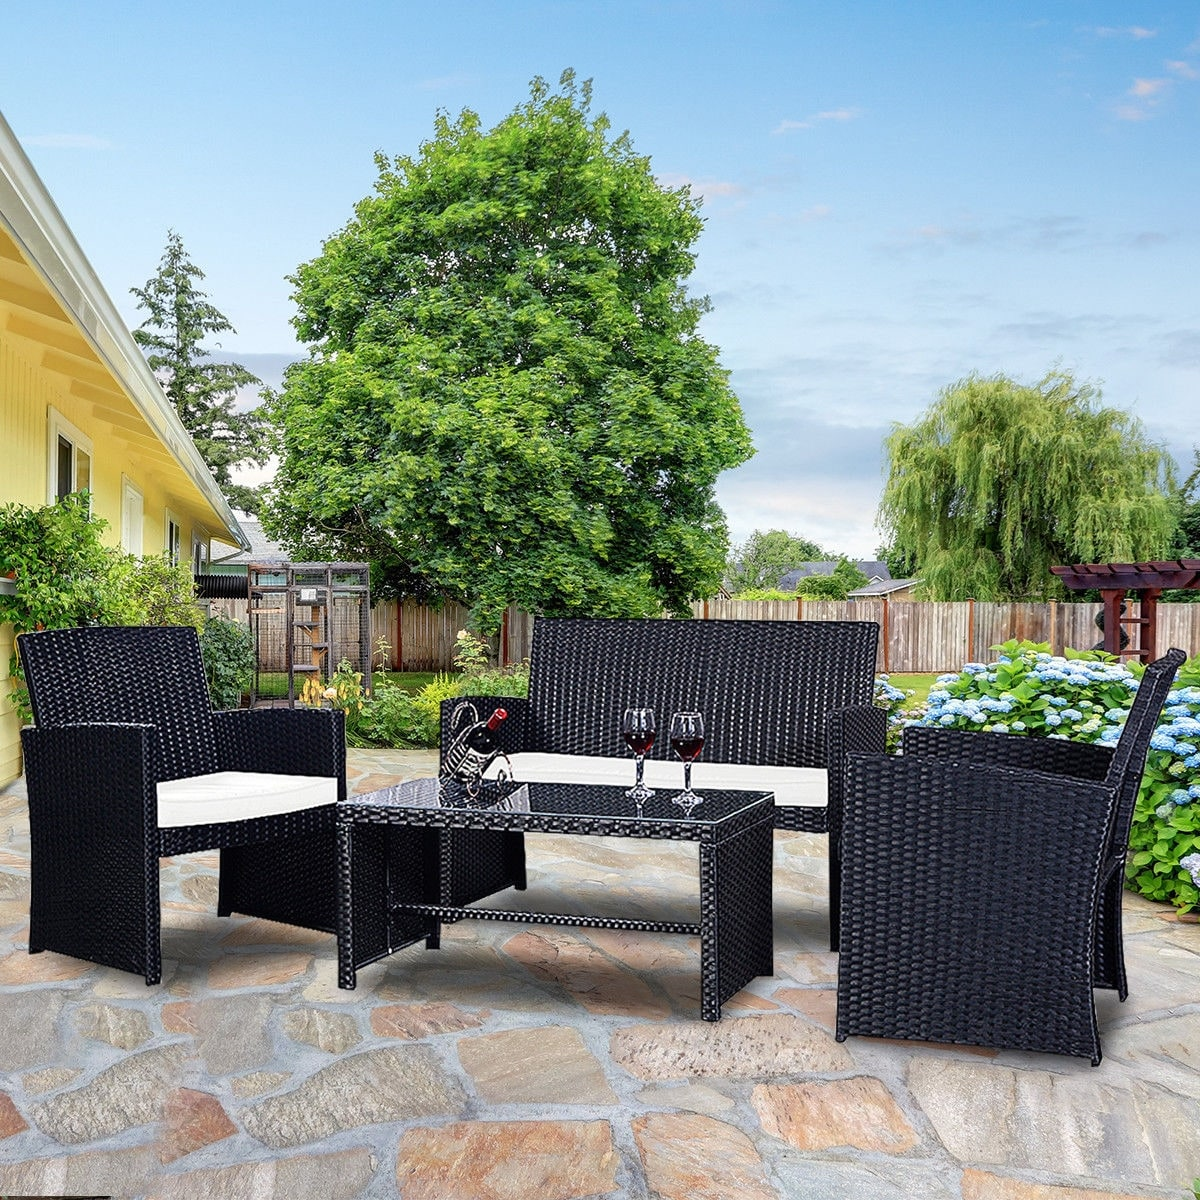 Overstock.com & Beach Patio Furniture | Find Great Outdoor Seating \u0026 Dining Deals ...